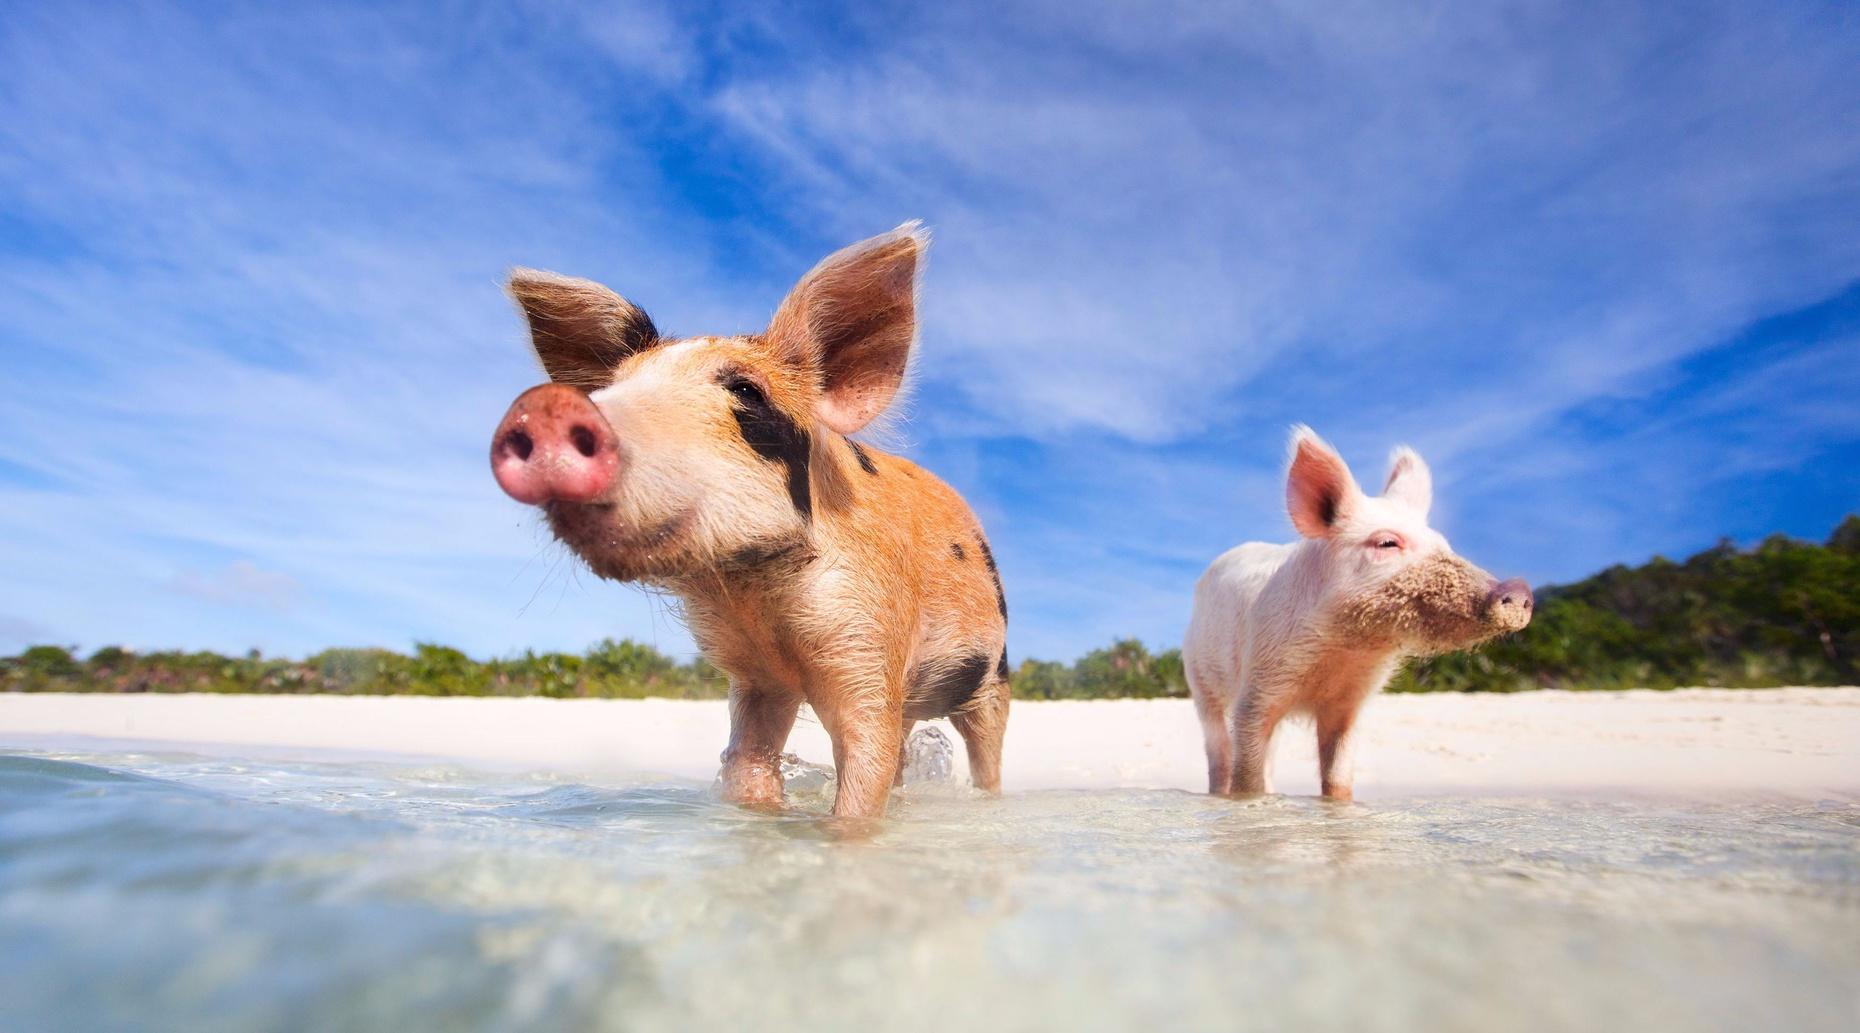 Swimming Pigs Tour from Nassau to Exuma Bahamas